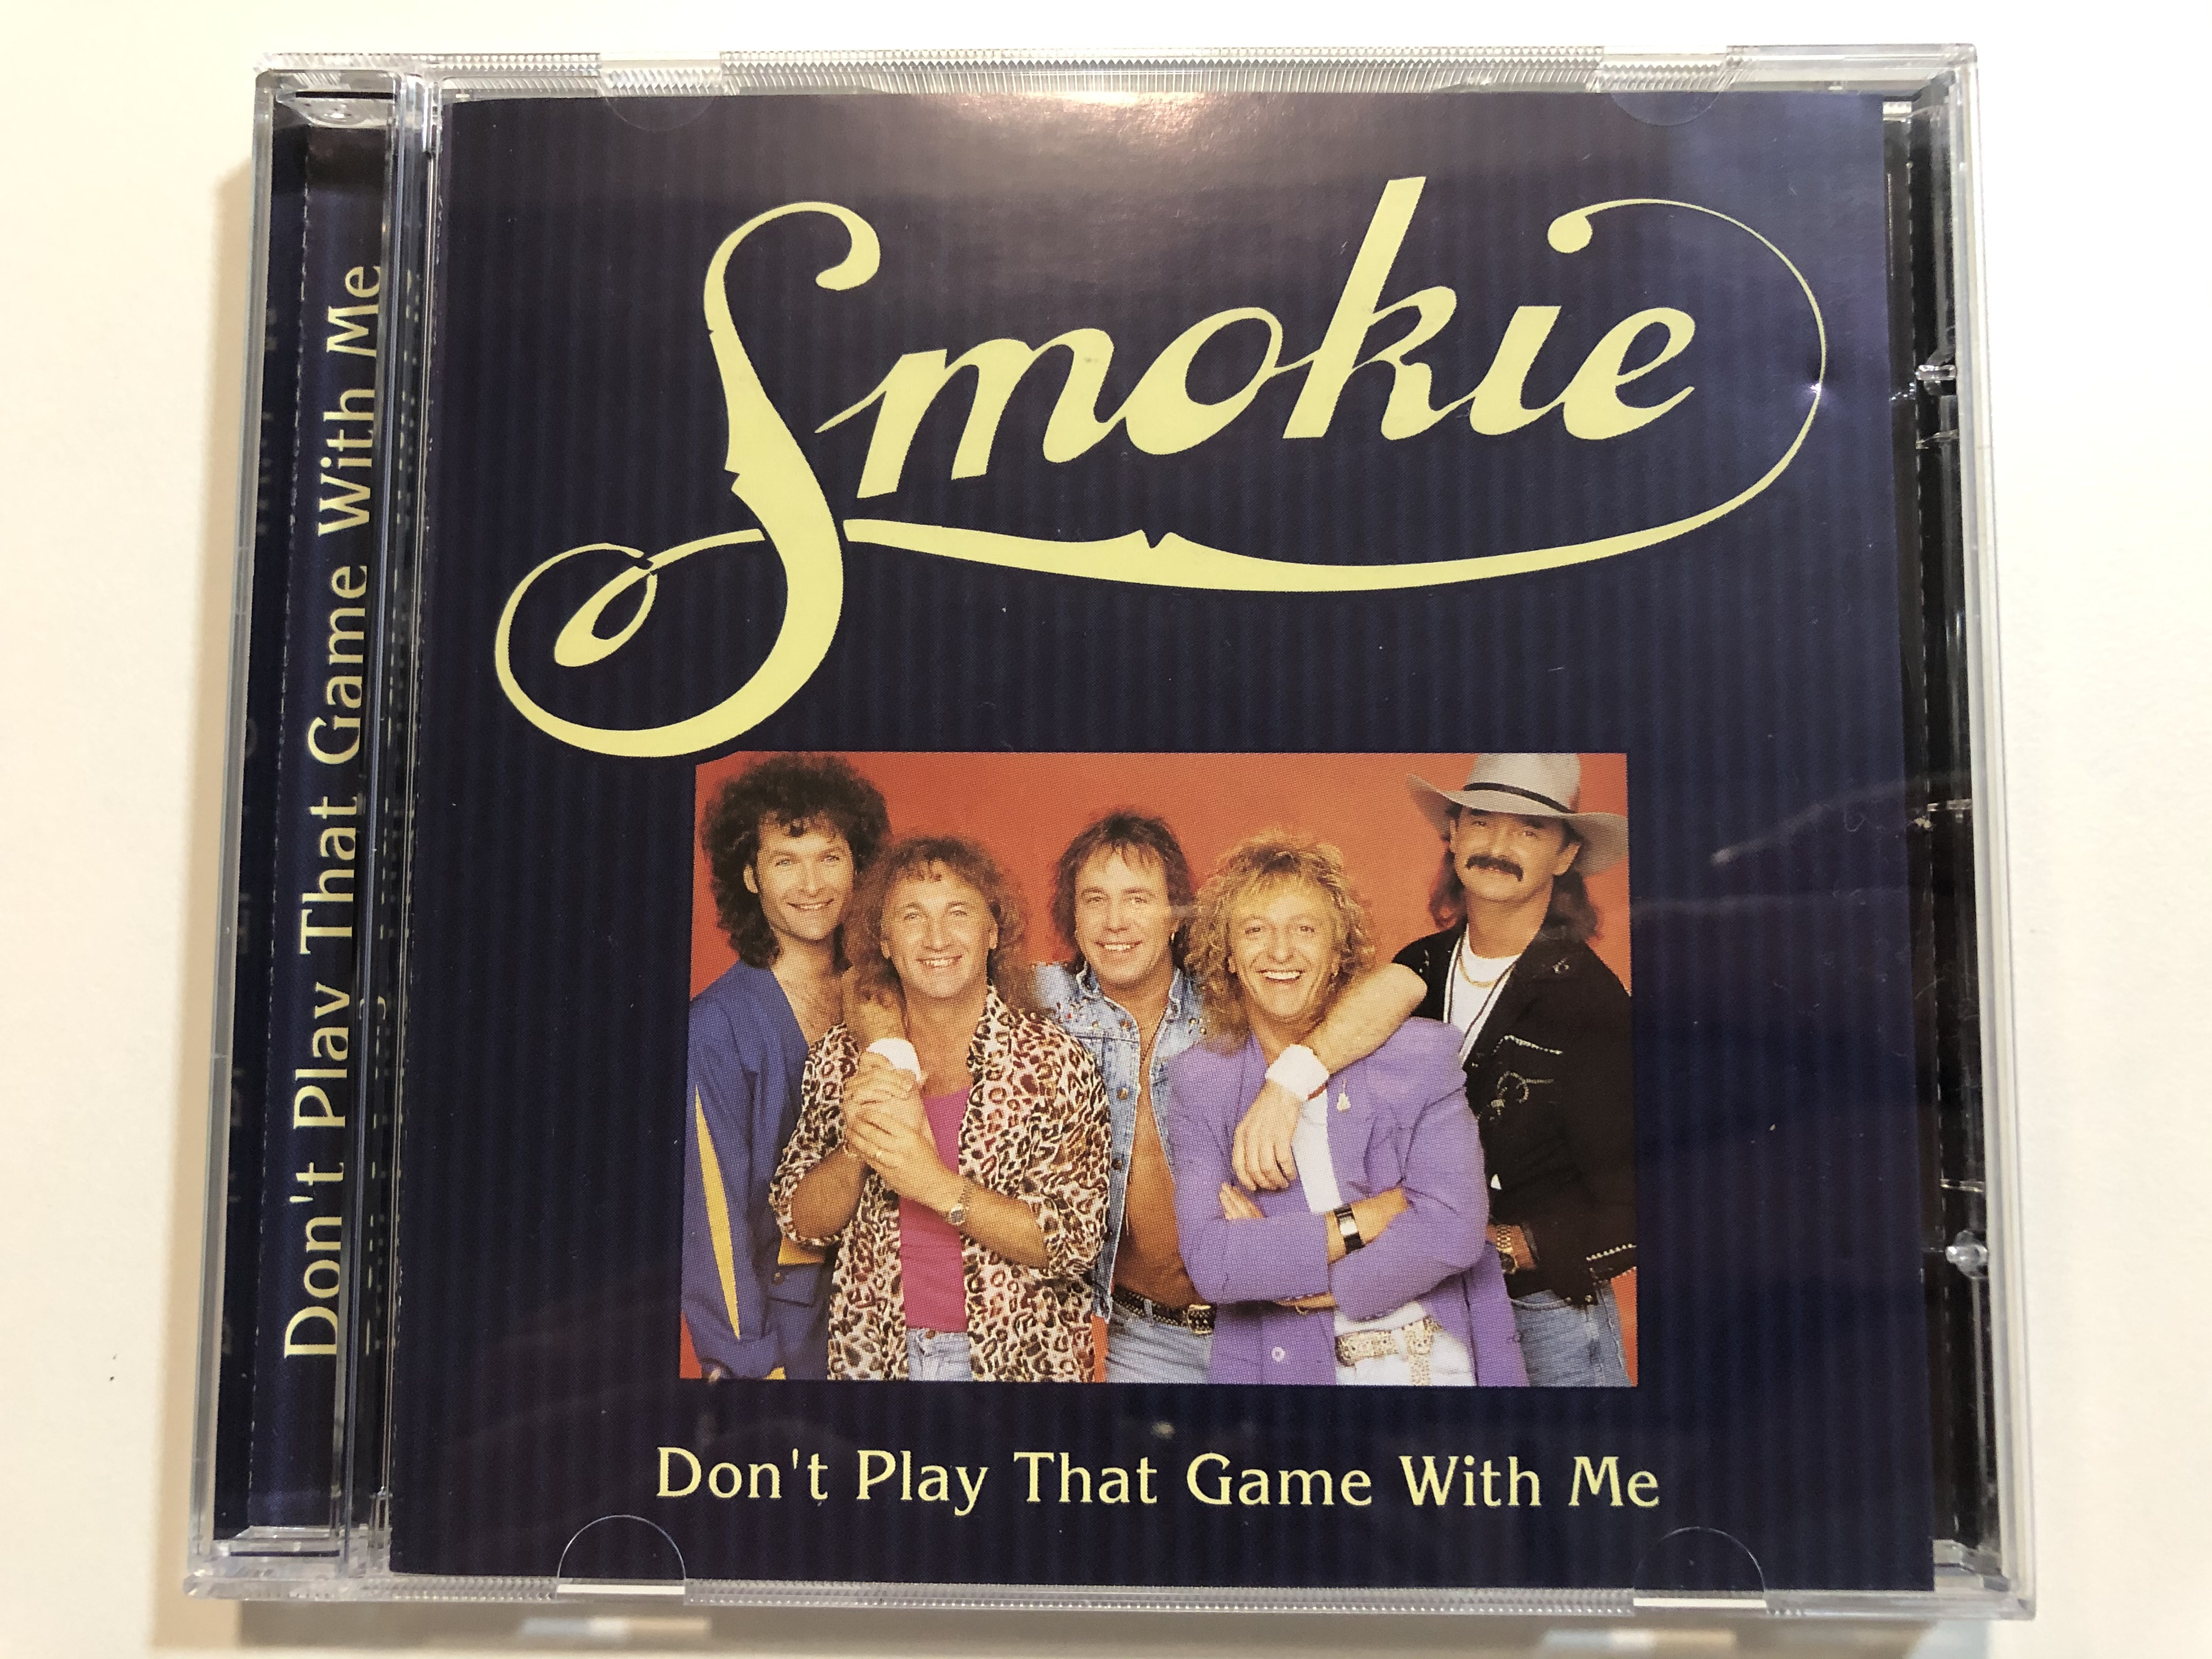 smokie-don-t-play-that-game-with-me-cmc-value-audio-cd-1995-5216122-1-.jpg